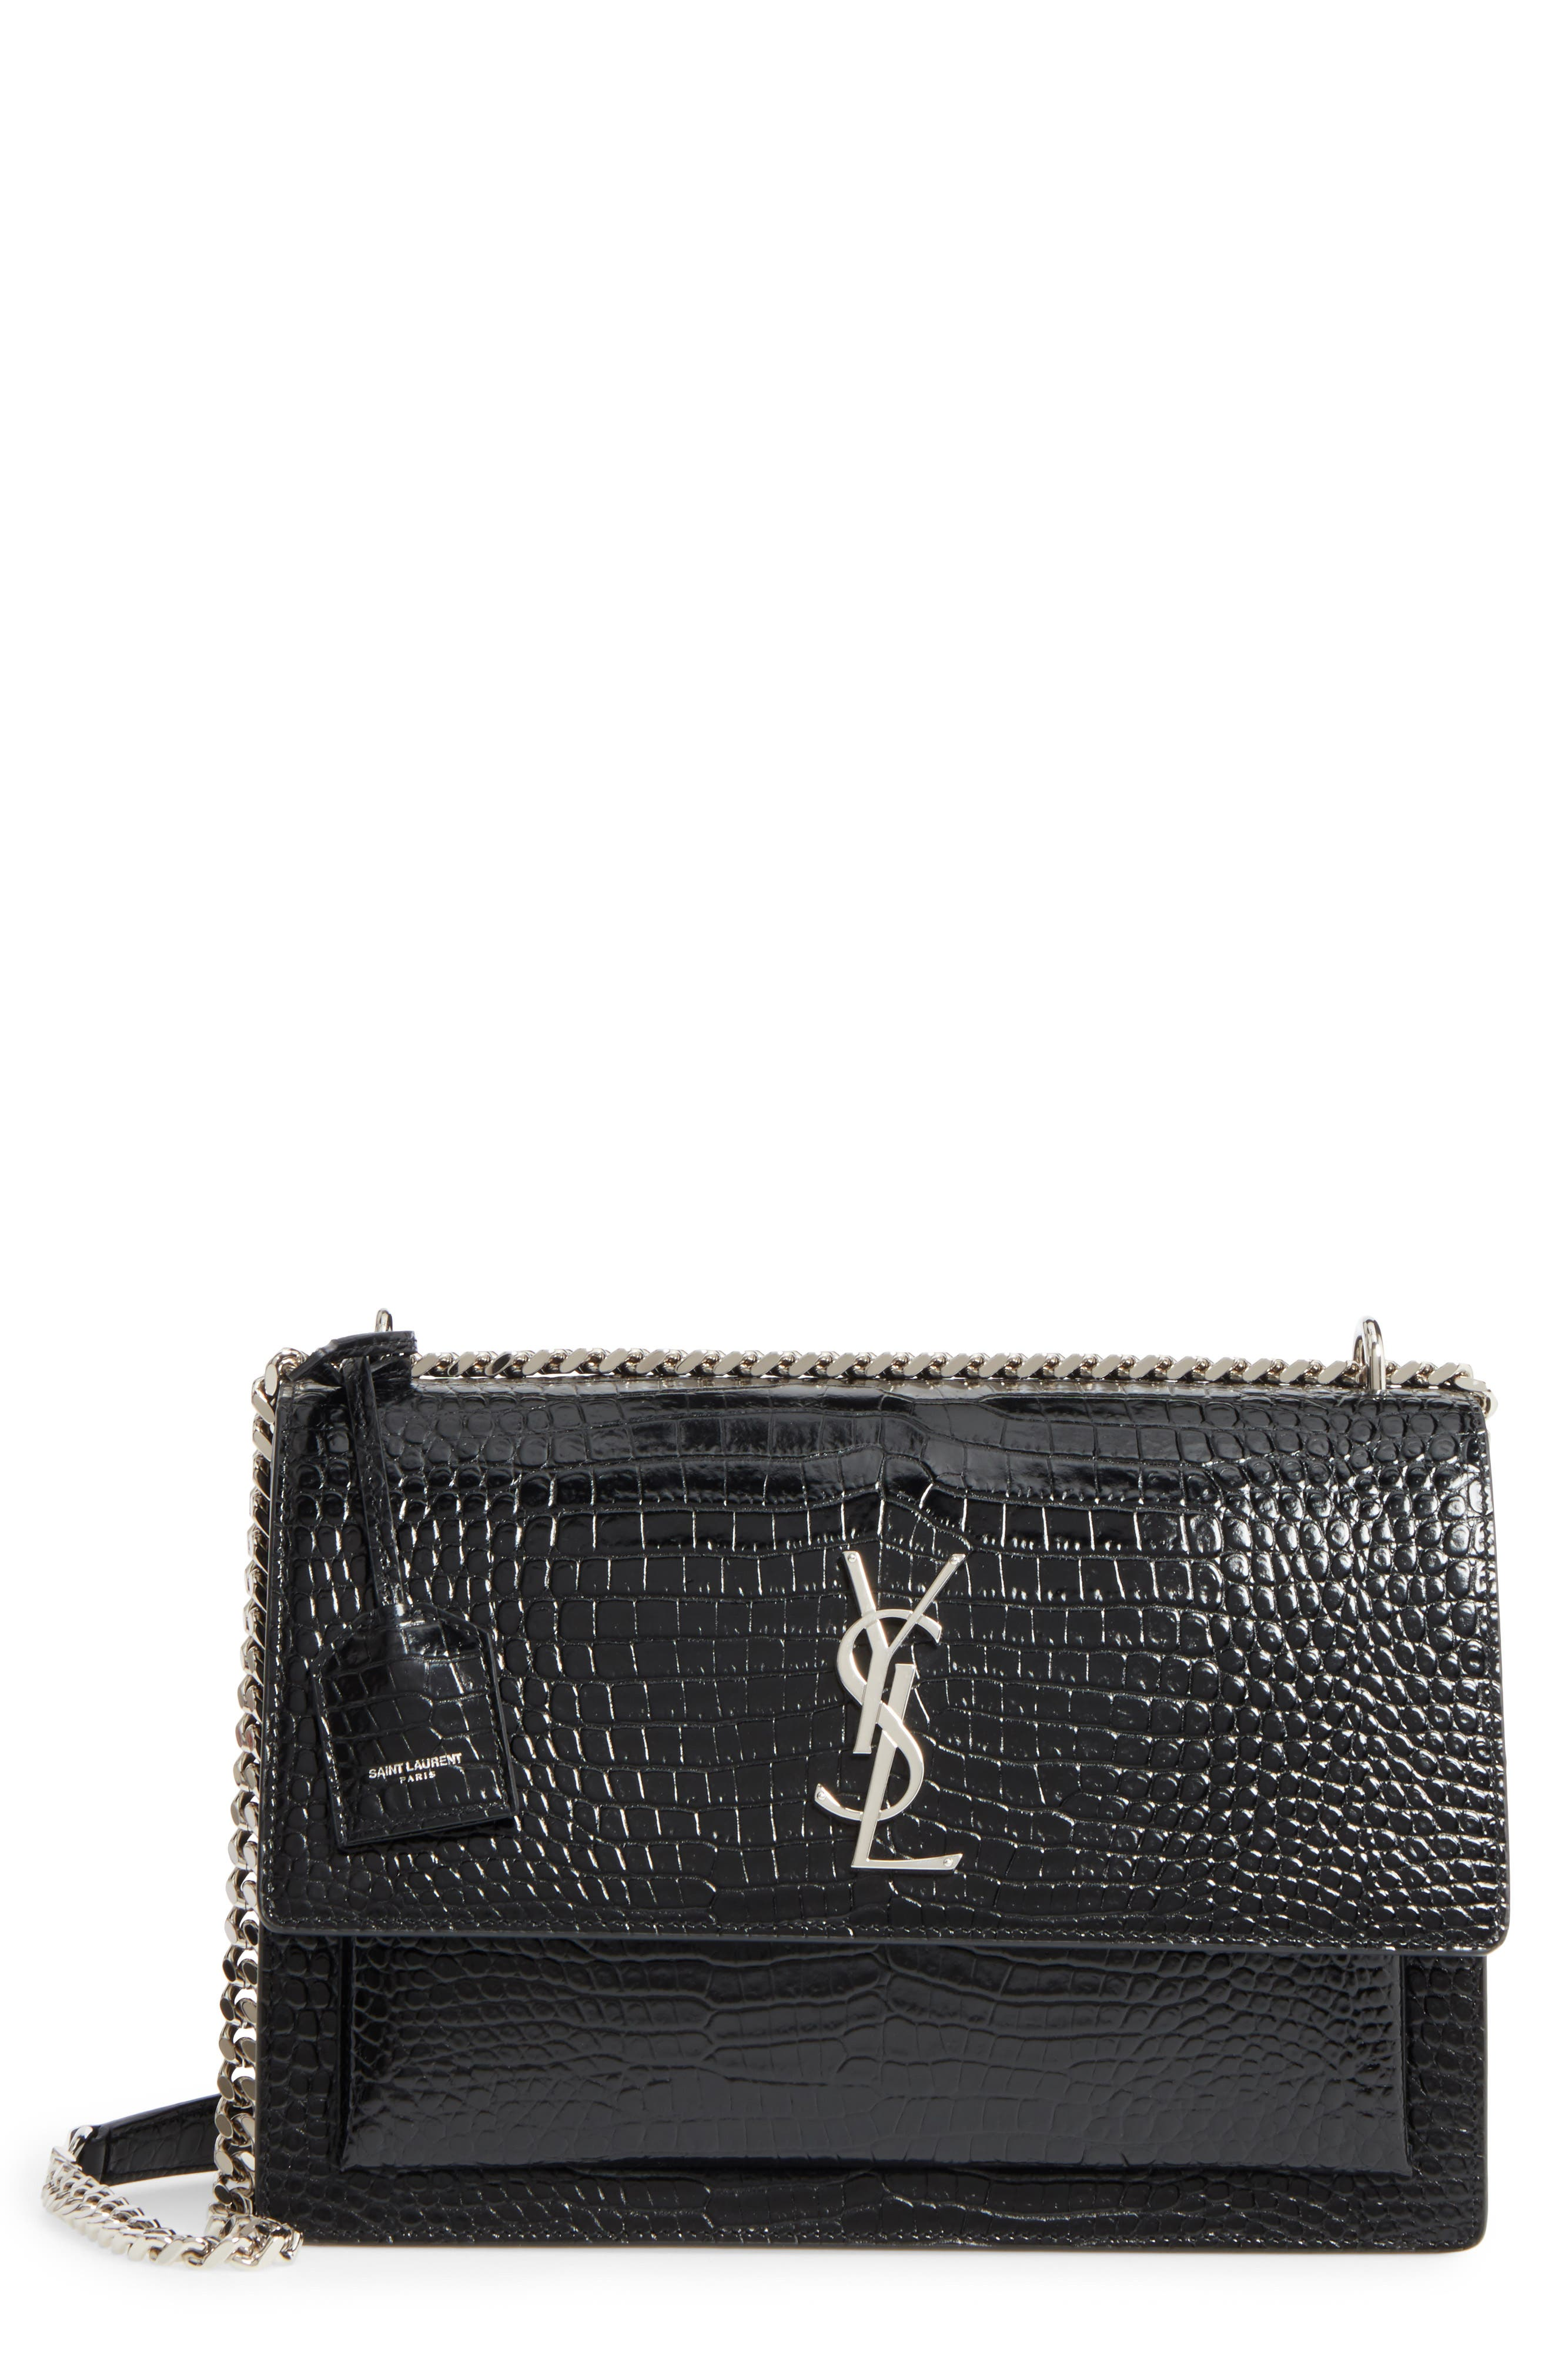 Saint Laurent Large Sunset Croc Embossed Leather Shoulder Bag